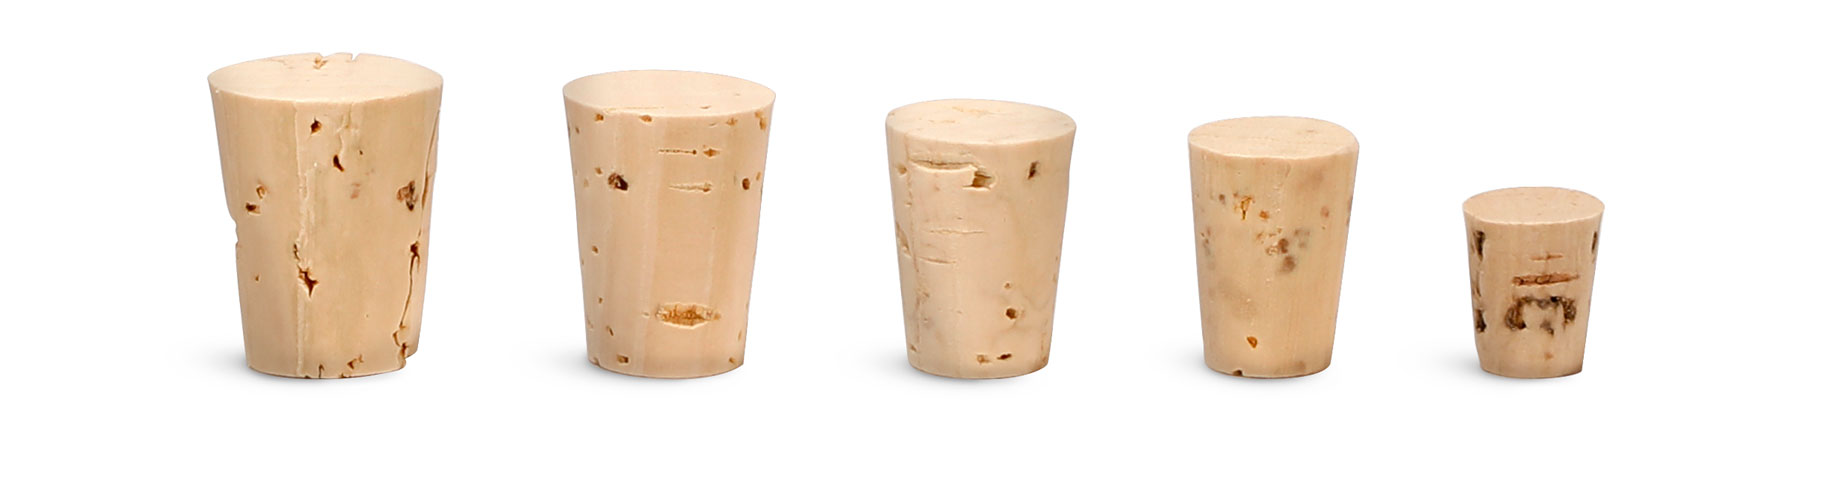 Cork Stoppers, Cork Stopper Sizes 000 - 5